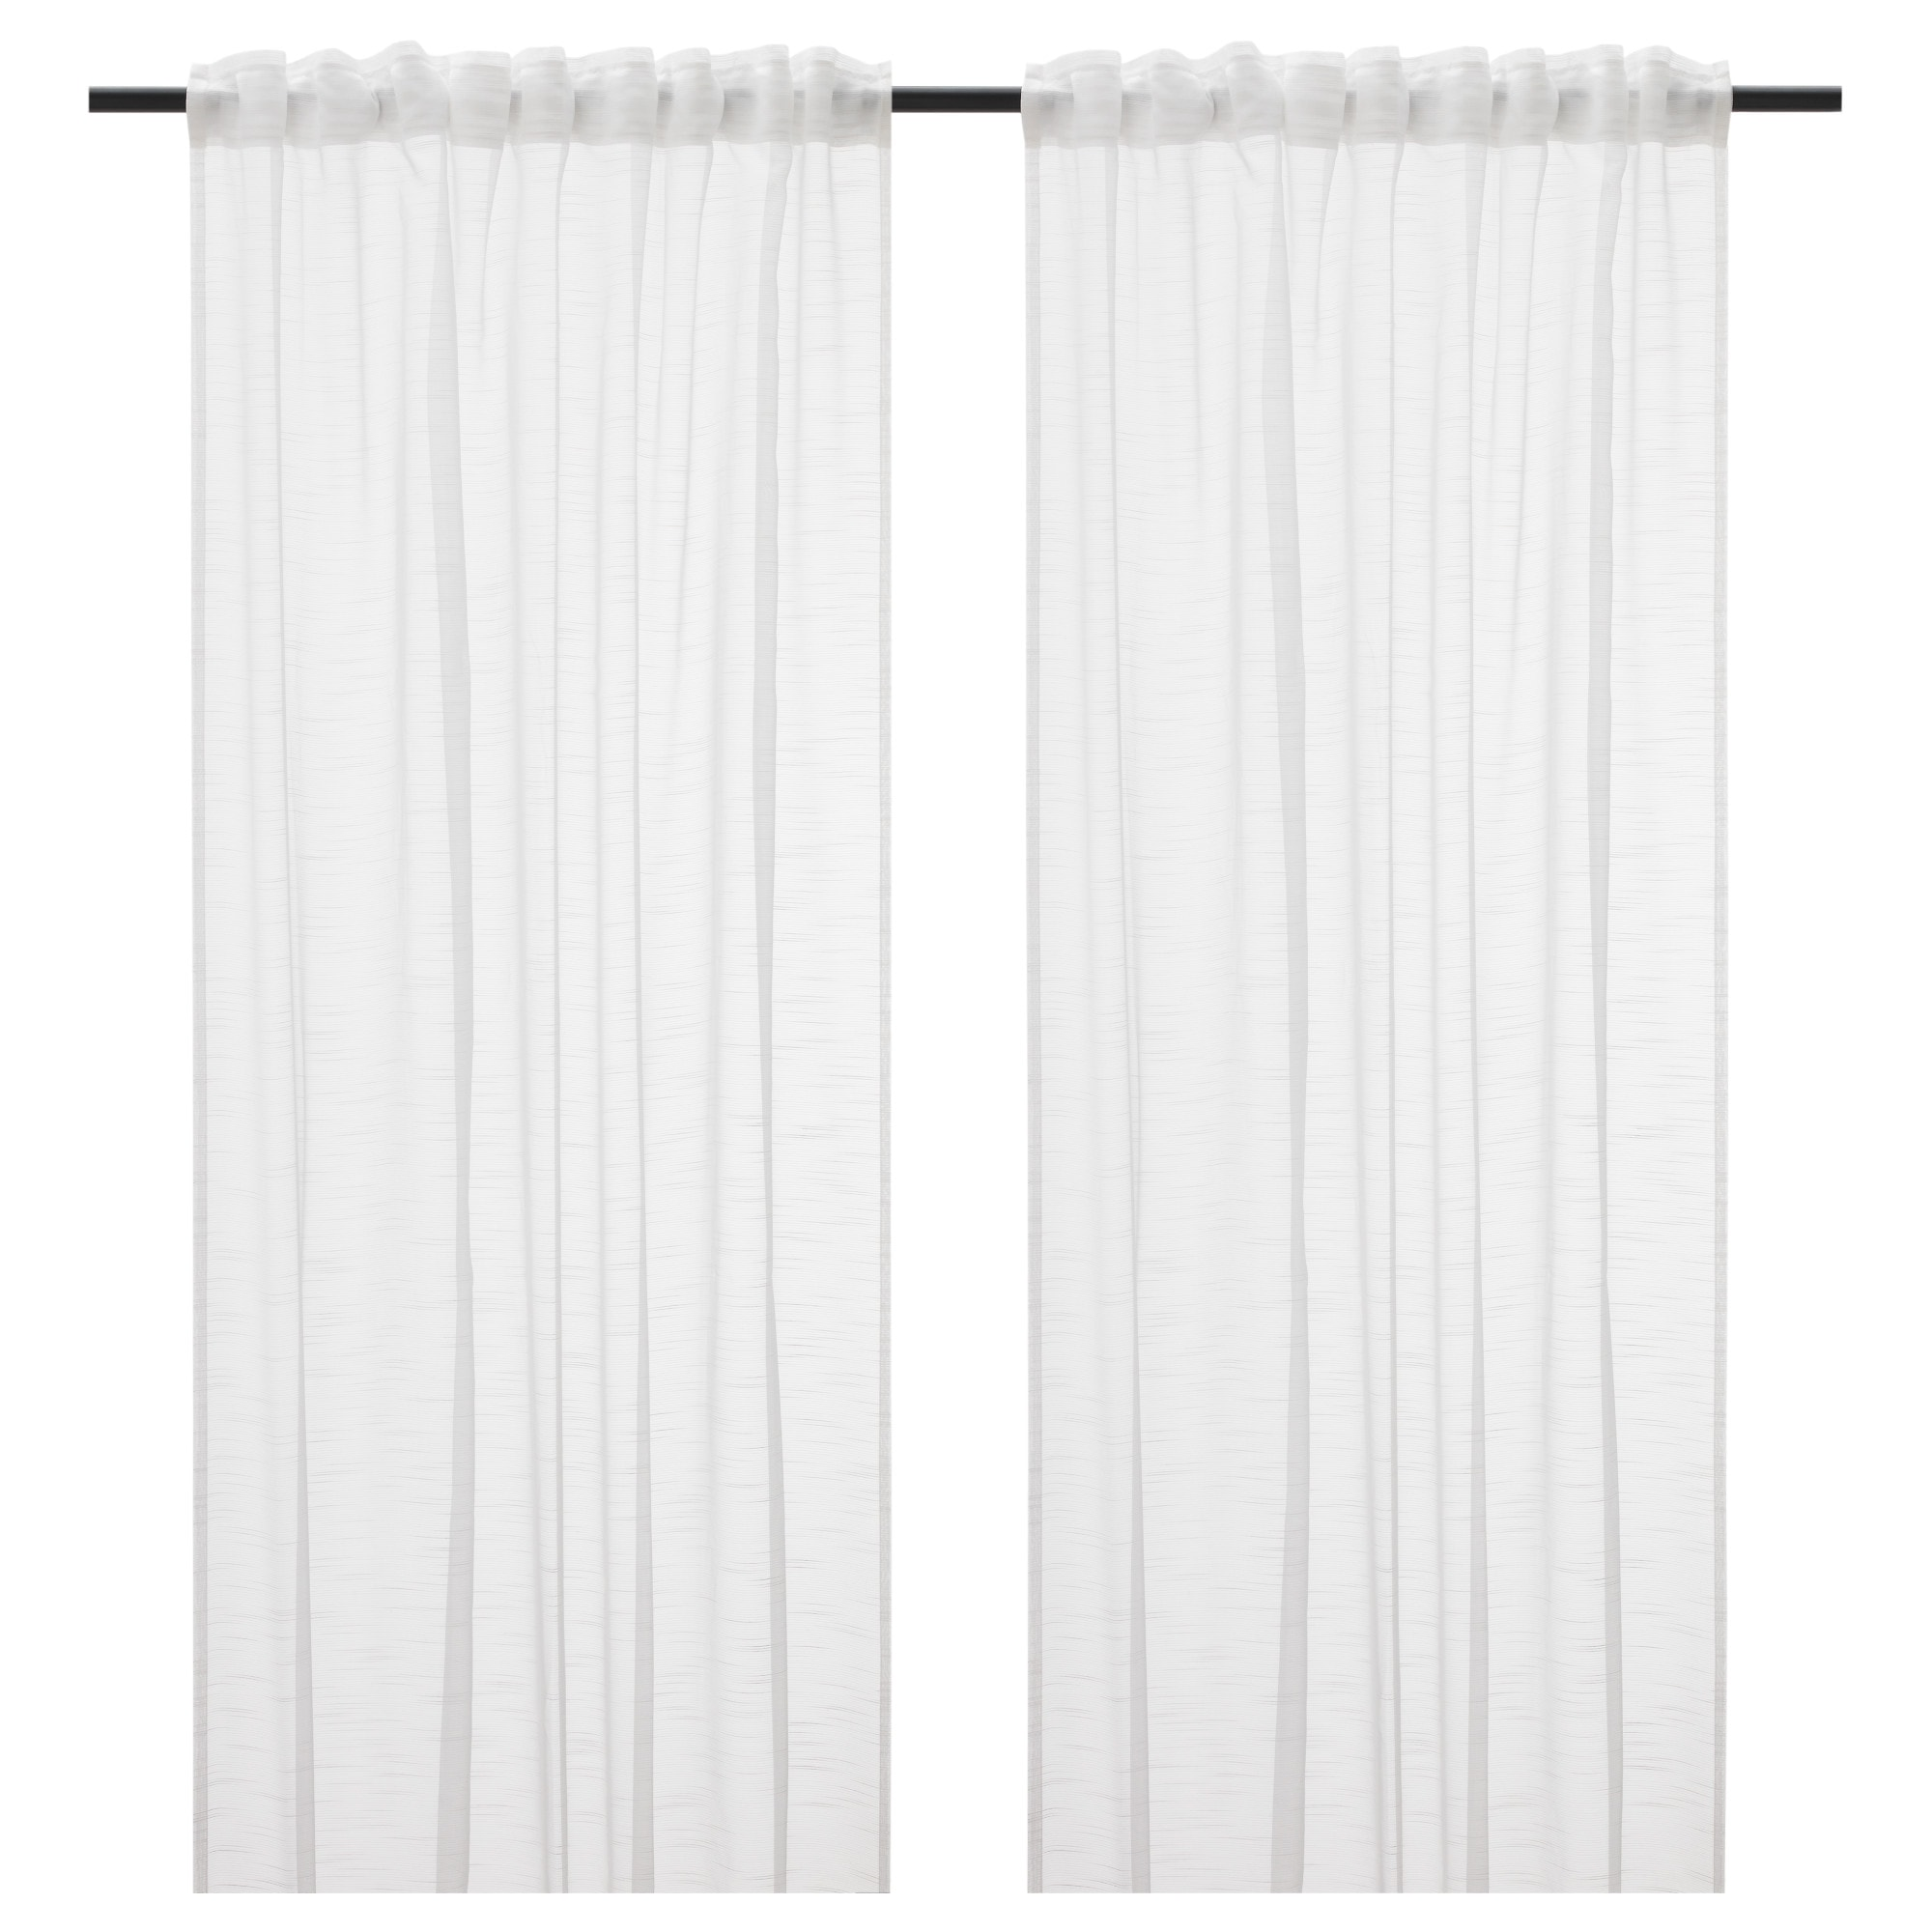 curtains of darken ikea rods awesome nunner new the thick review size rt design pair white full